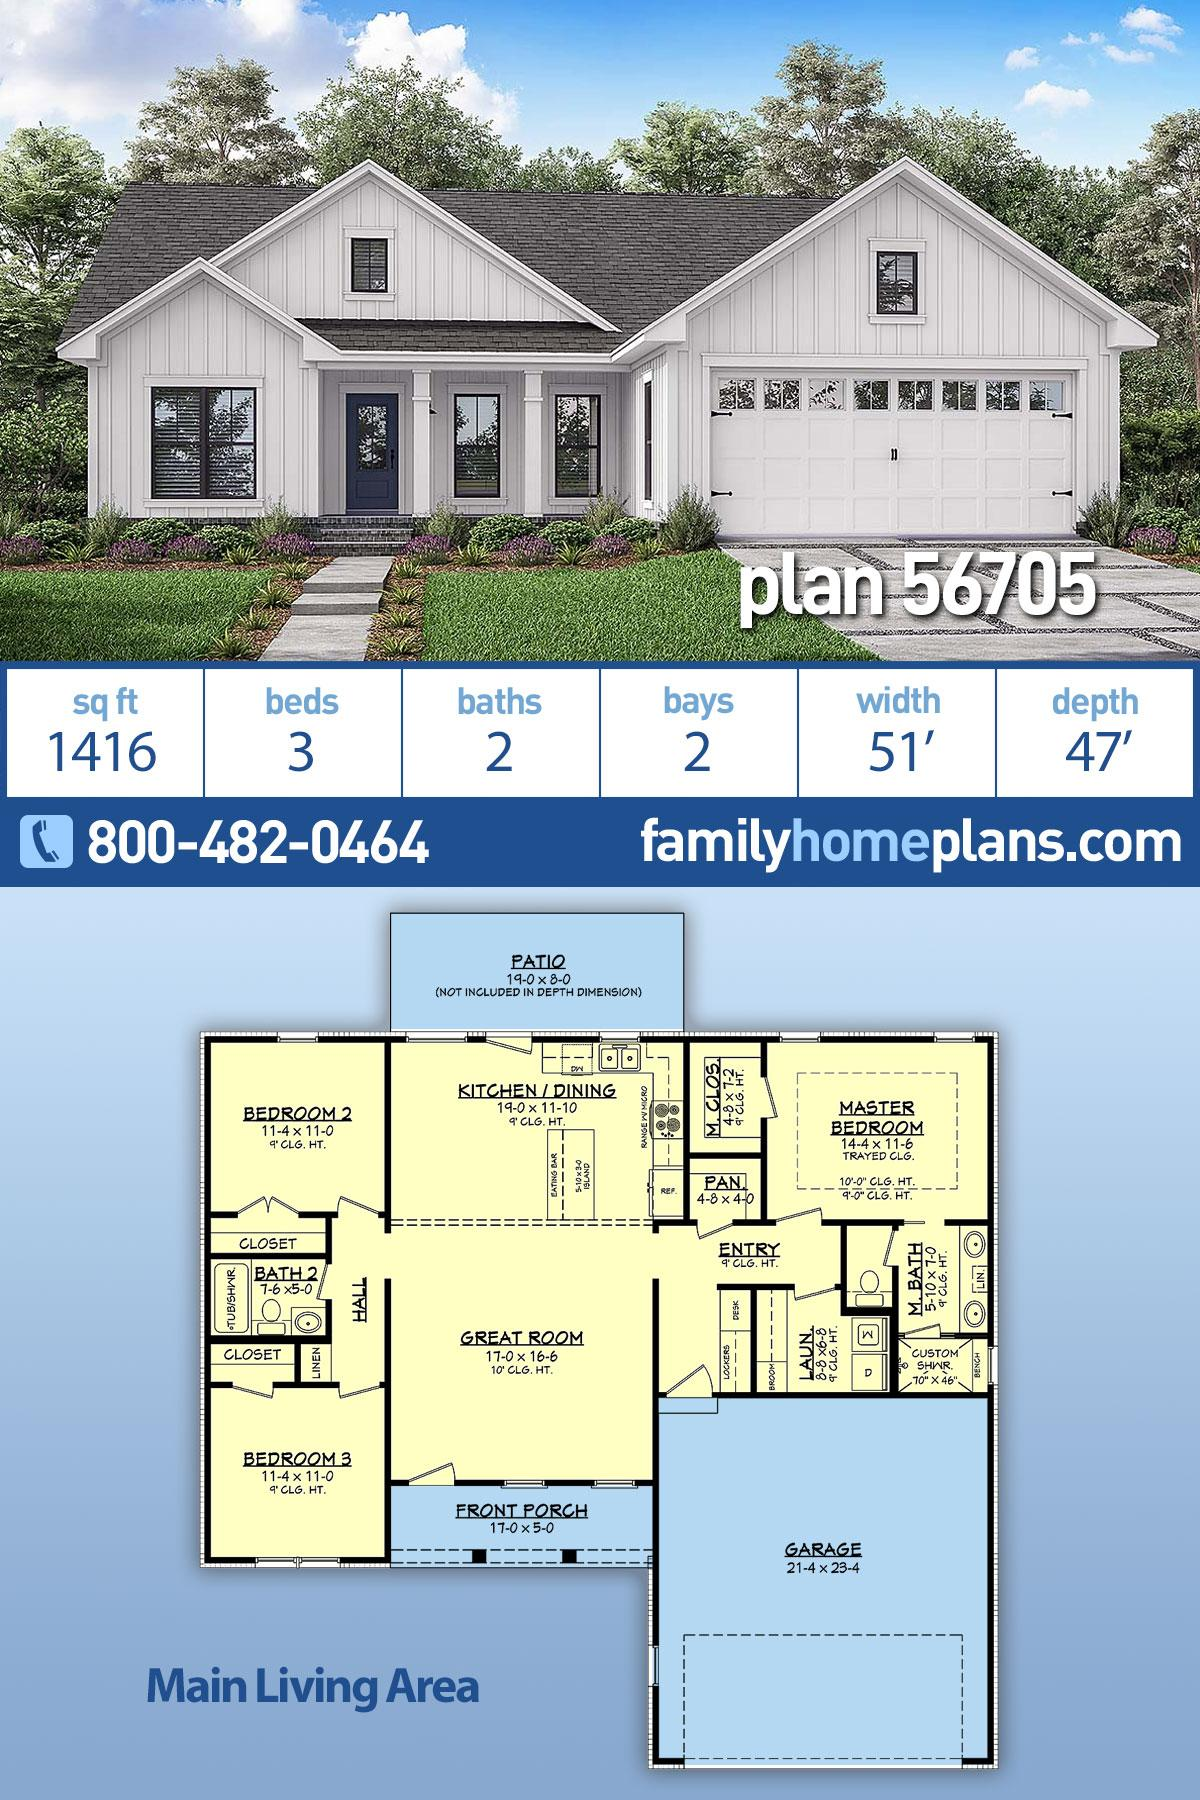 Country, Farmhouse, Traditional House Plan 56705 with 3 Beds, 2 Baths, 2 Car Garage